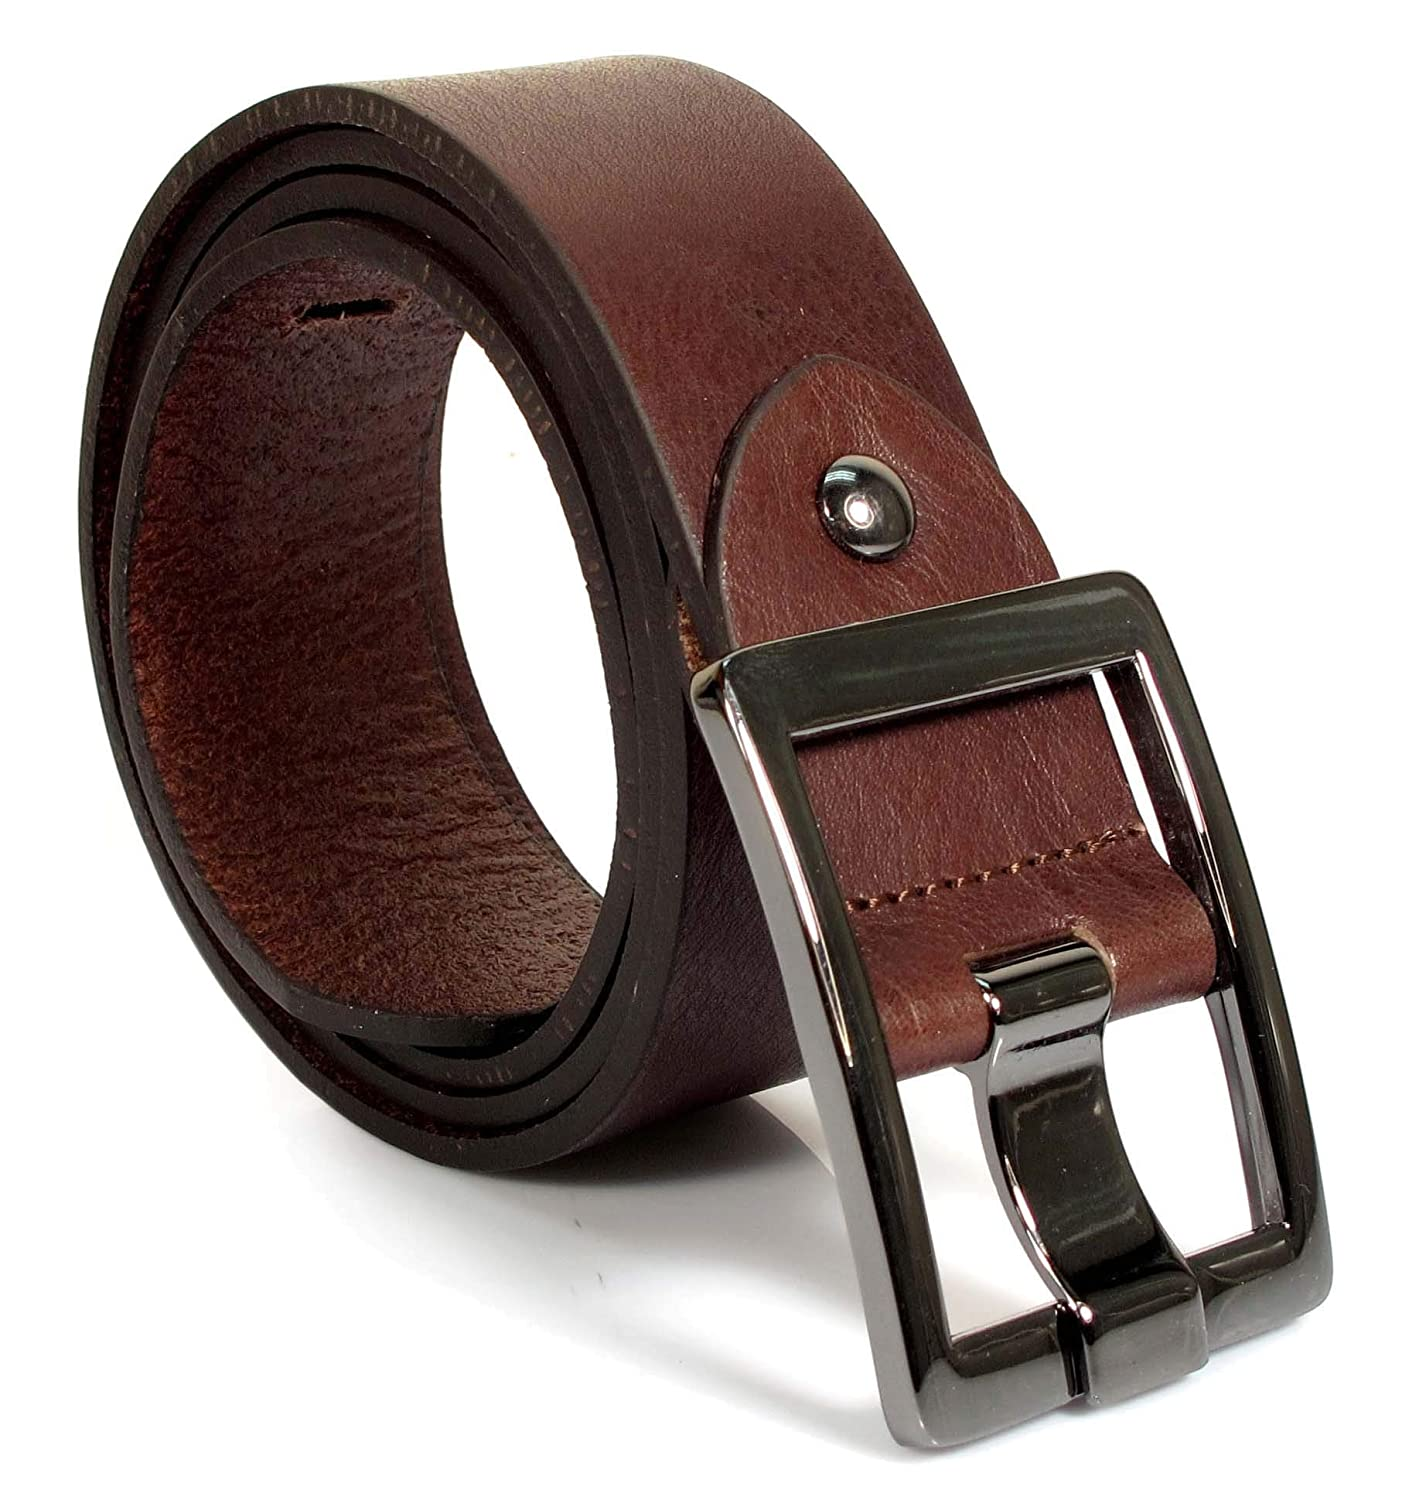 UM6 Mens Real Genuine Leather Dark Brown Belt 1.5 Wide S-XL Thick Casual Jeans